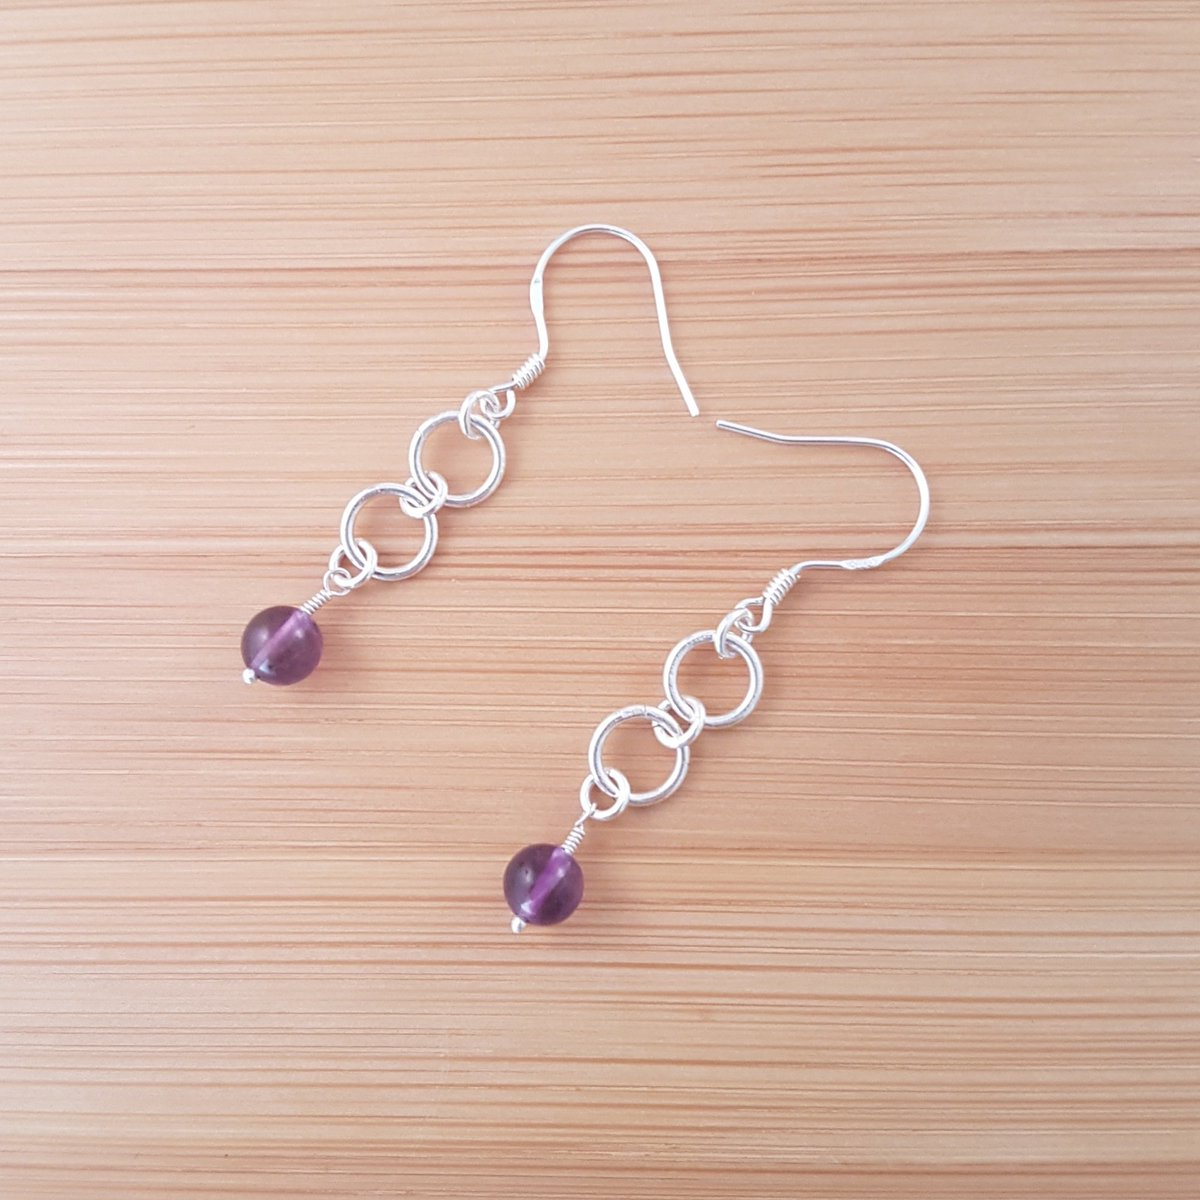 Amethyst and silver ring earrings